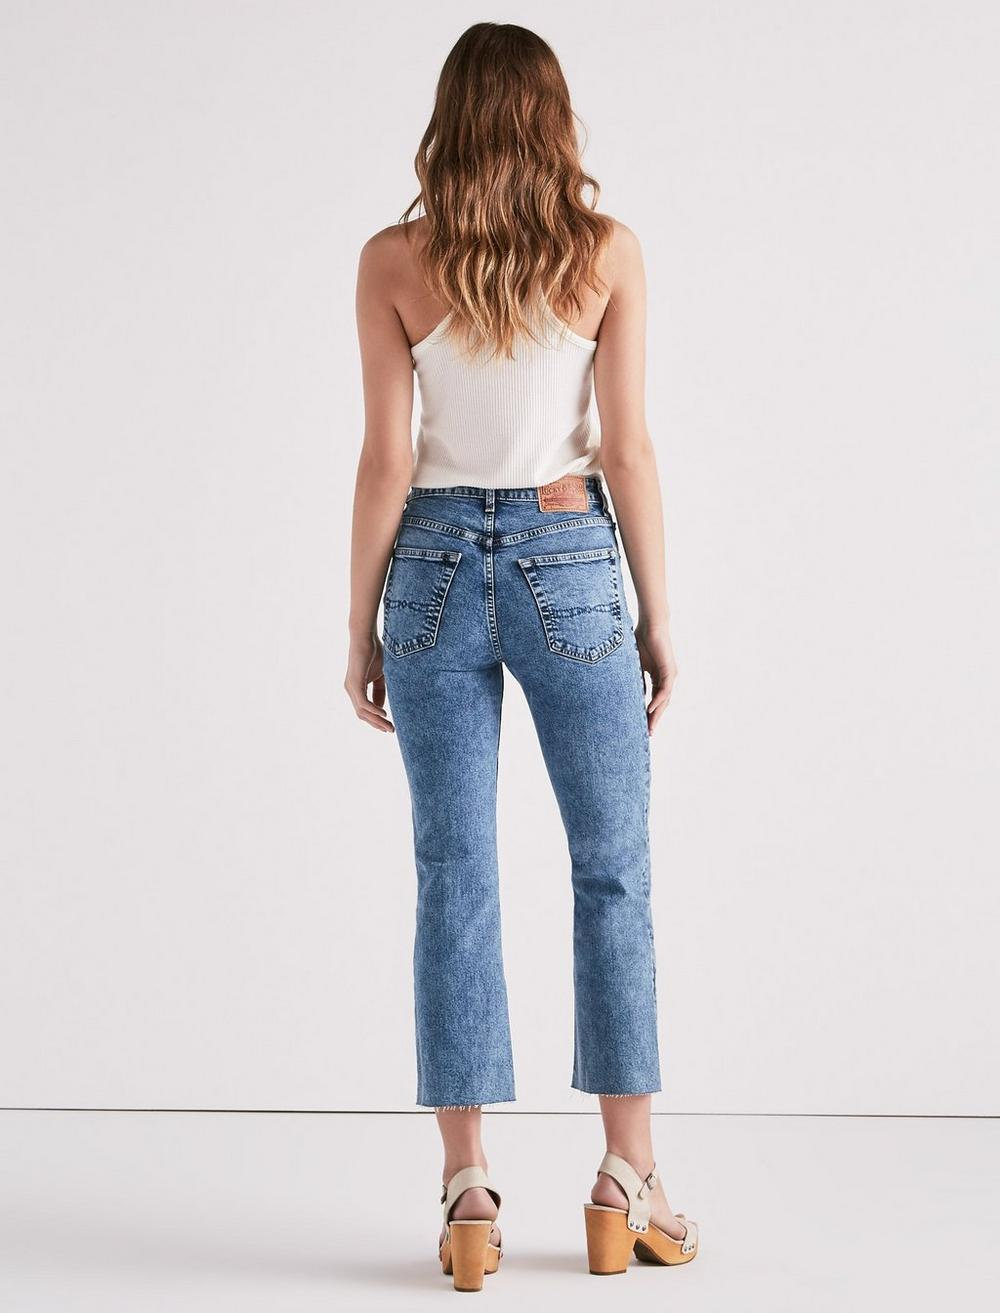 LUCKY PINS HIGH RISE CROPPED JEAN WITH EMBROIDERY, image 2